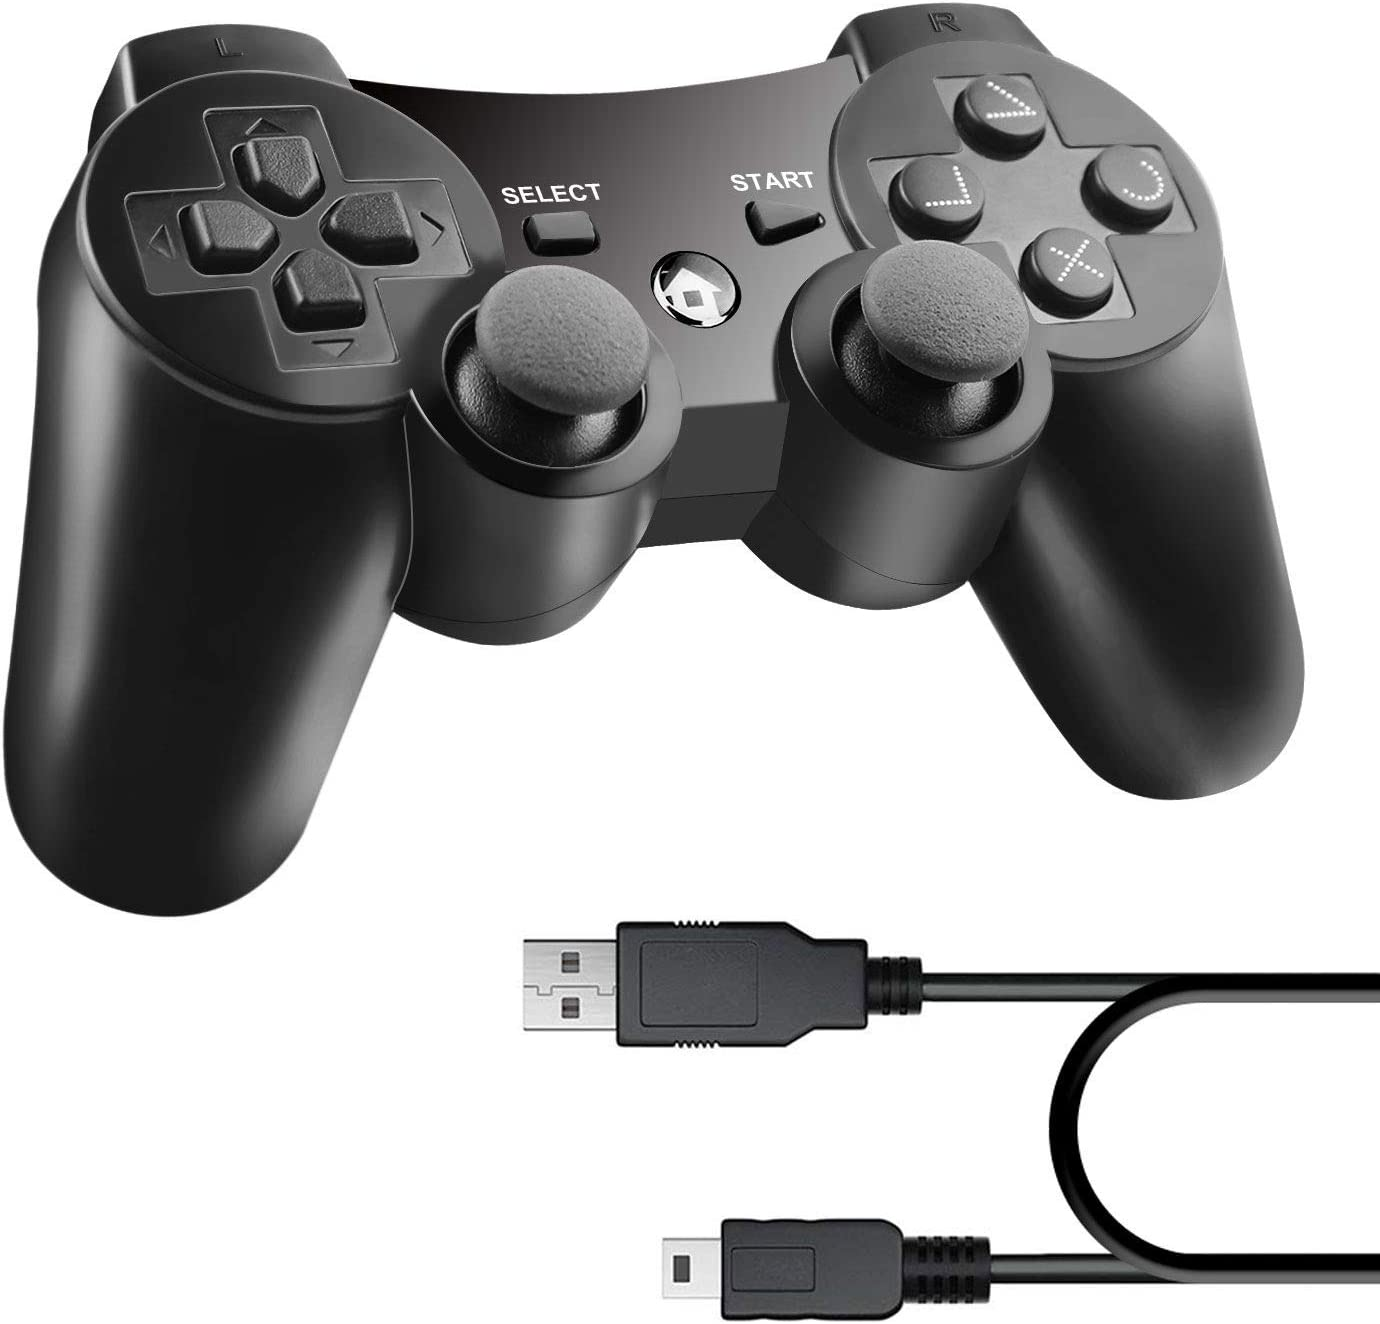 Diswoe Mando Inalámbrico para PS3 Controller Bluetooth con Función SIXAXIS y Doble Vibración, Wireless Rechargable Bluetooth Gamepad Remote Joystick Controller Gamepad para Sony PS3 Playstation 3